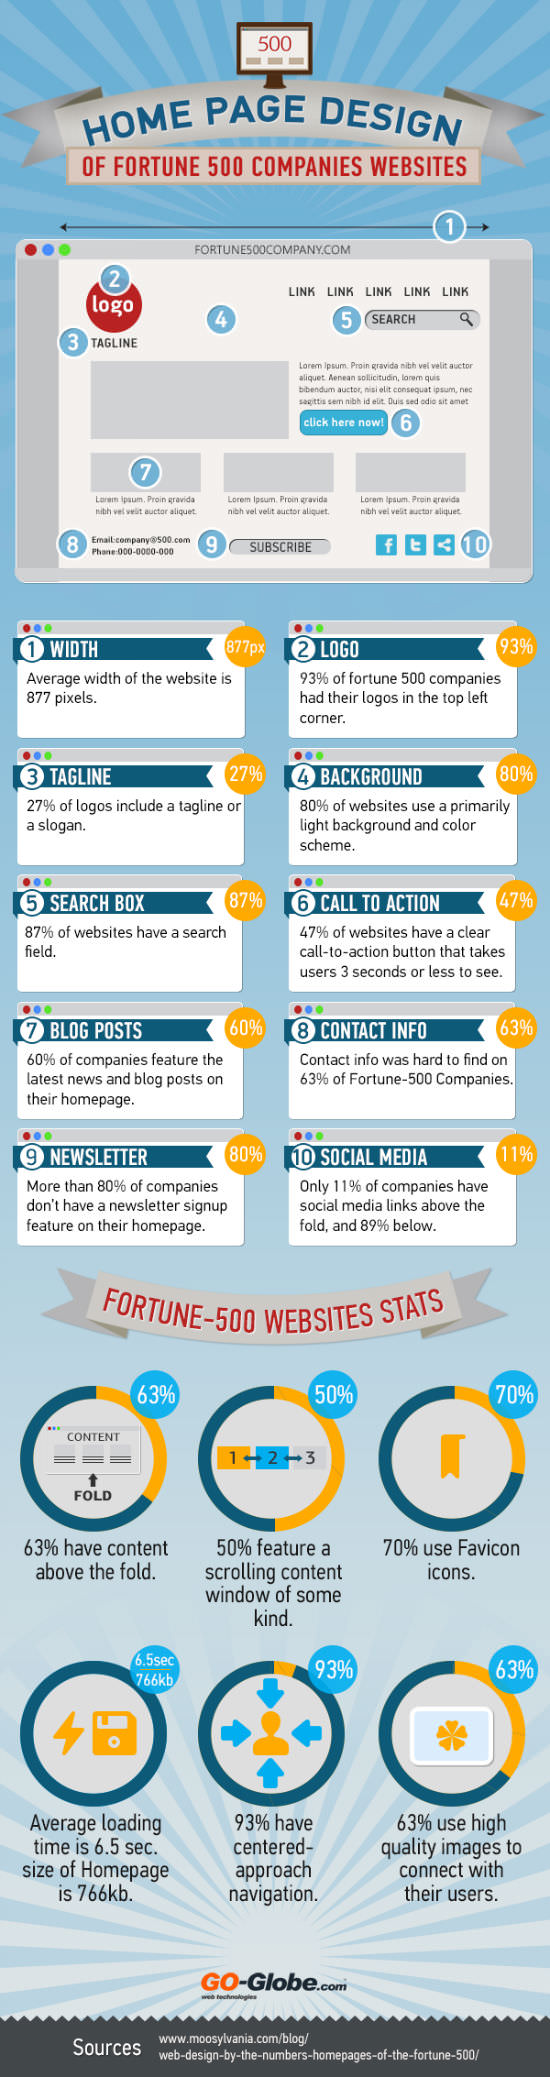 fortune-500-homepagedesign-infographic-org-w550